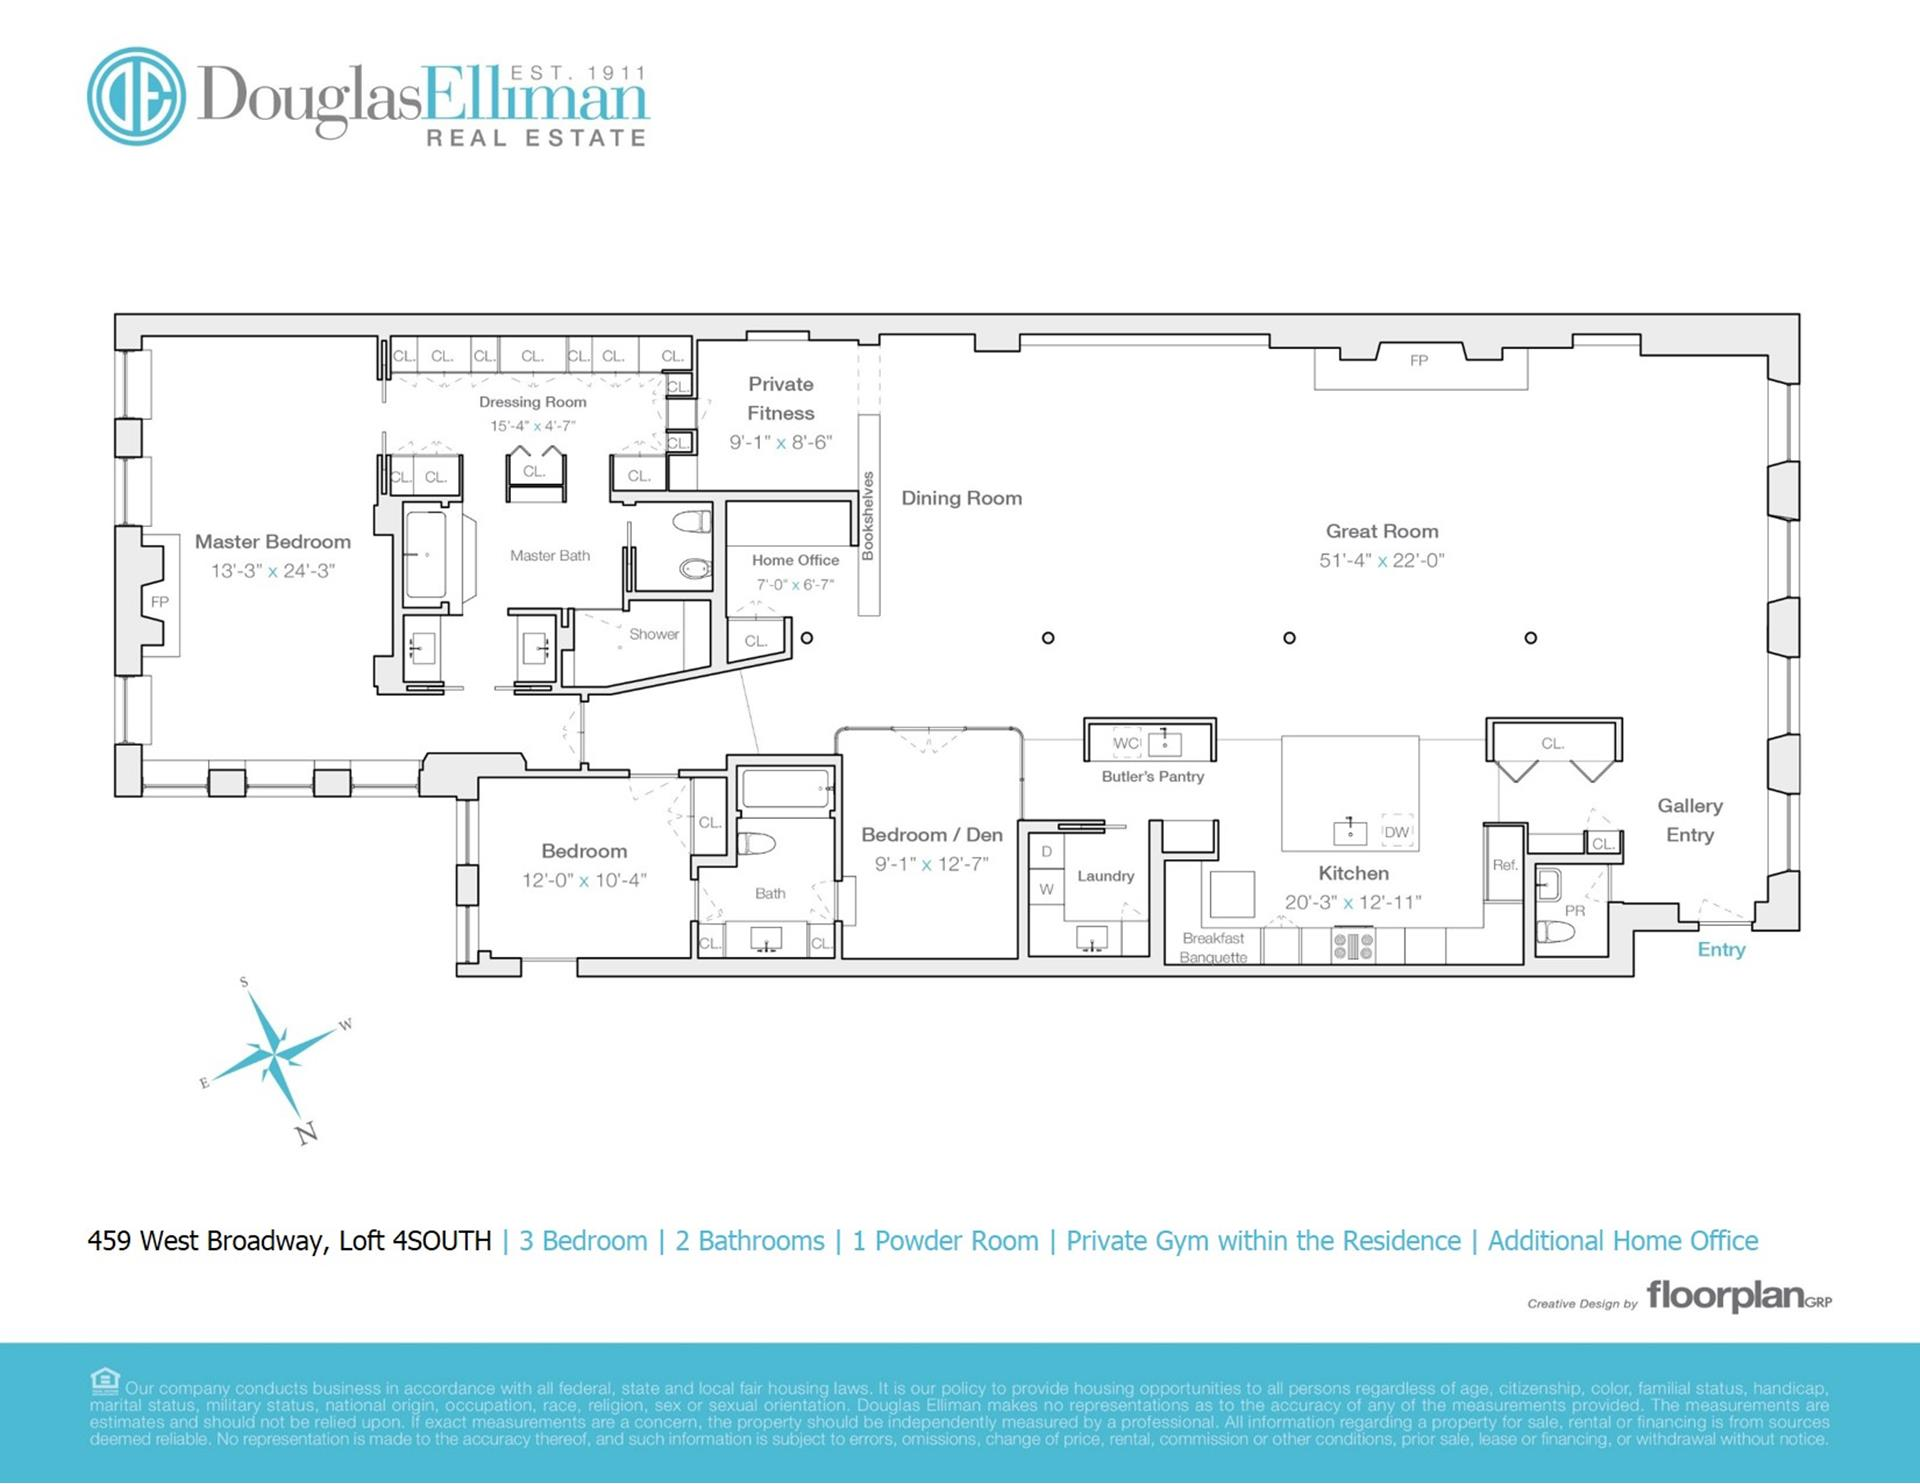 Floor plan of 459 West Broadway, 4S - SoHo - Nolita, New York